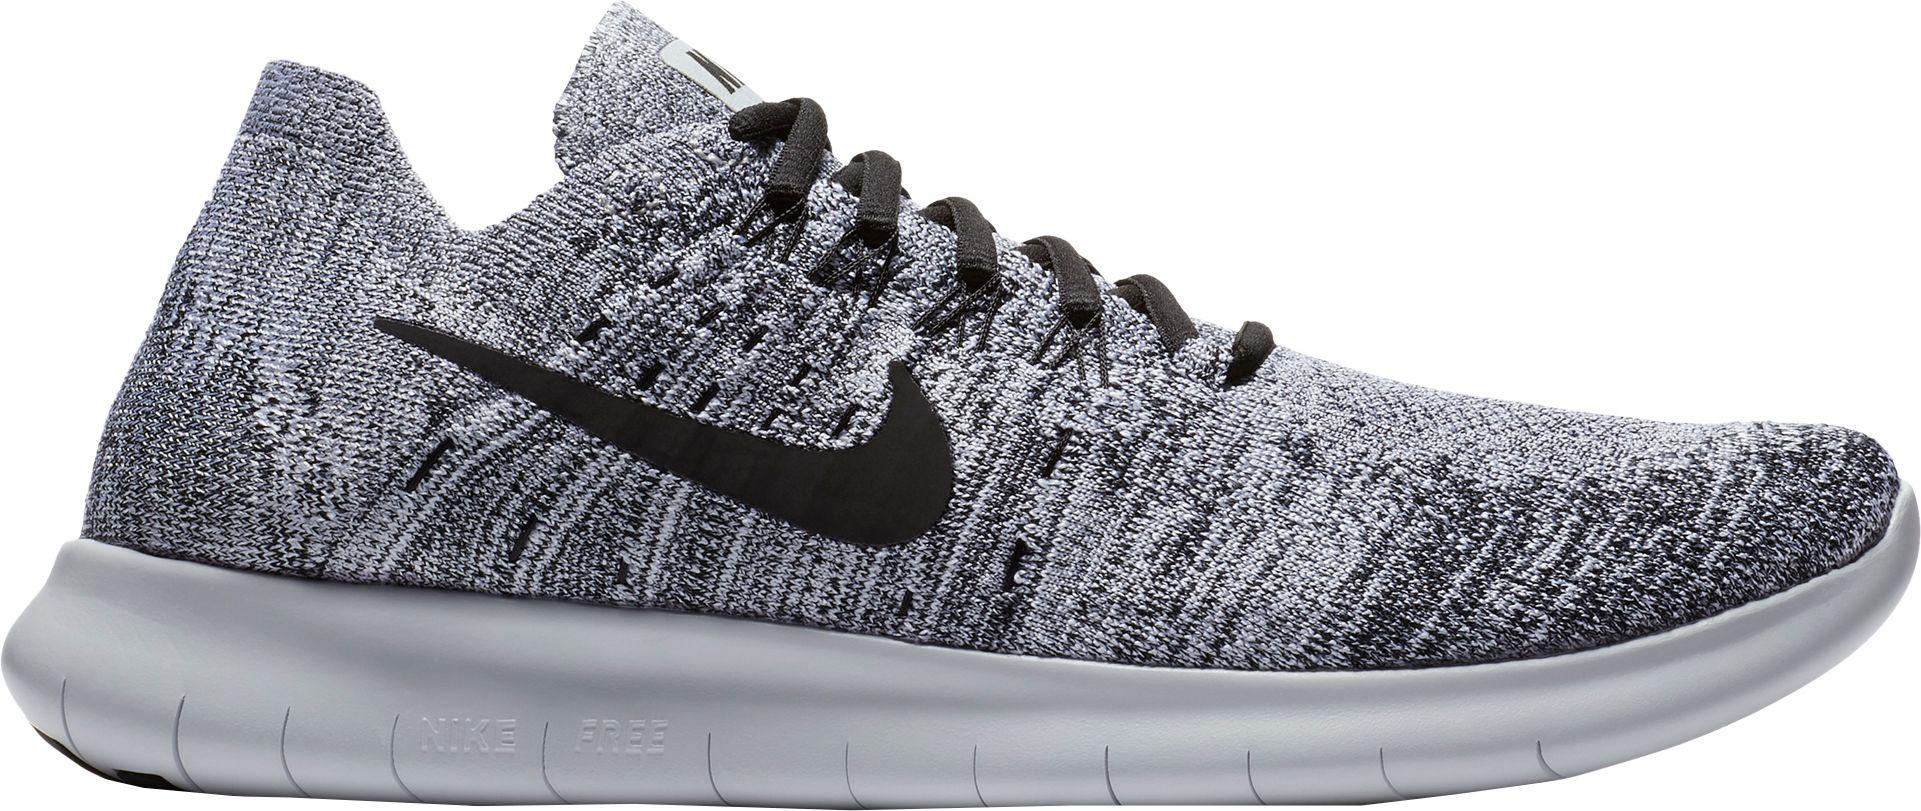 45d5a8ecae6a Lyst - Nike Free Rn Flyknit 2017 Running Shoes in Gray for Men